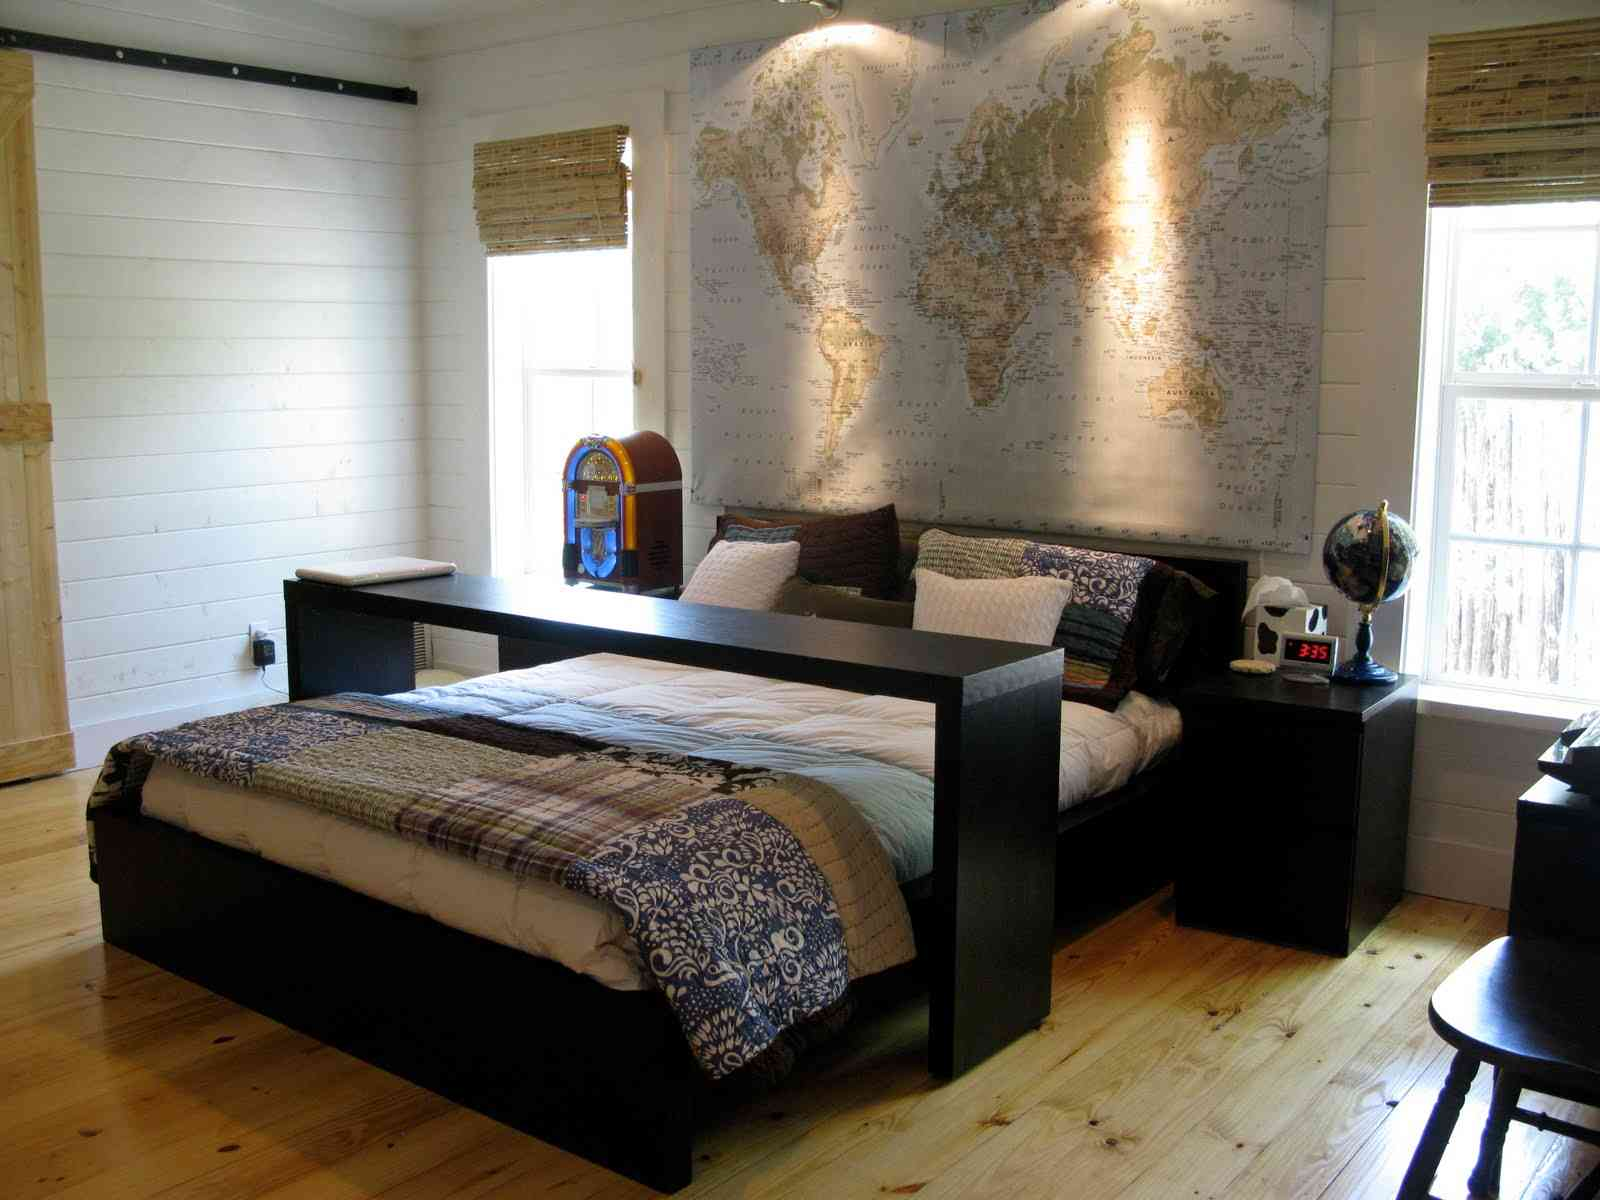 New Bedroom Designs 2015 bedroom furniture from ikea - new bedroom 2015 | room design